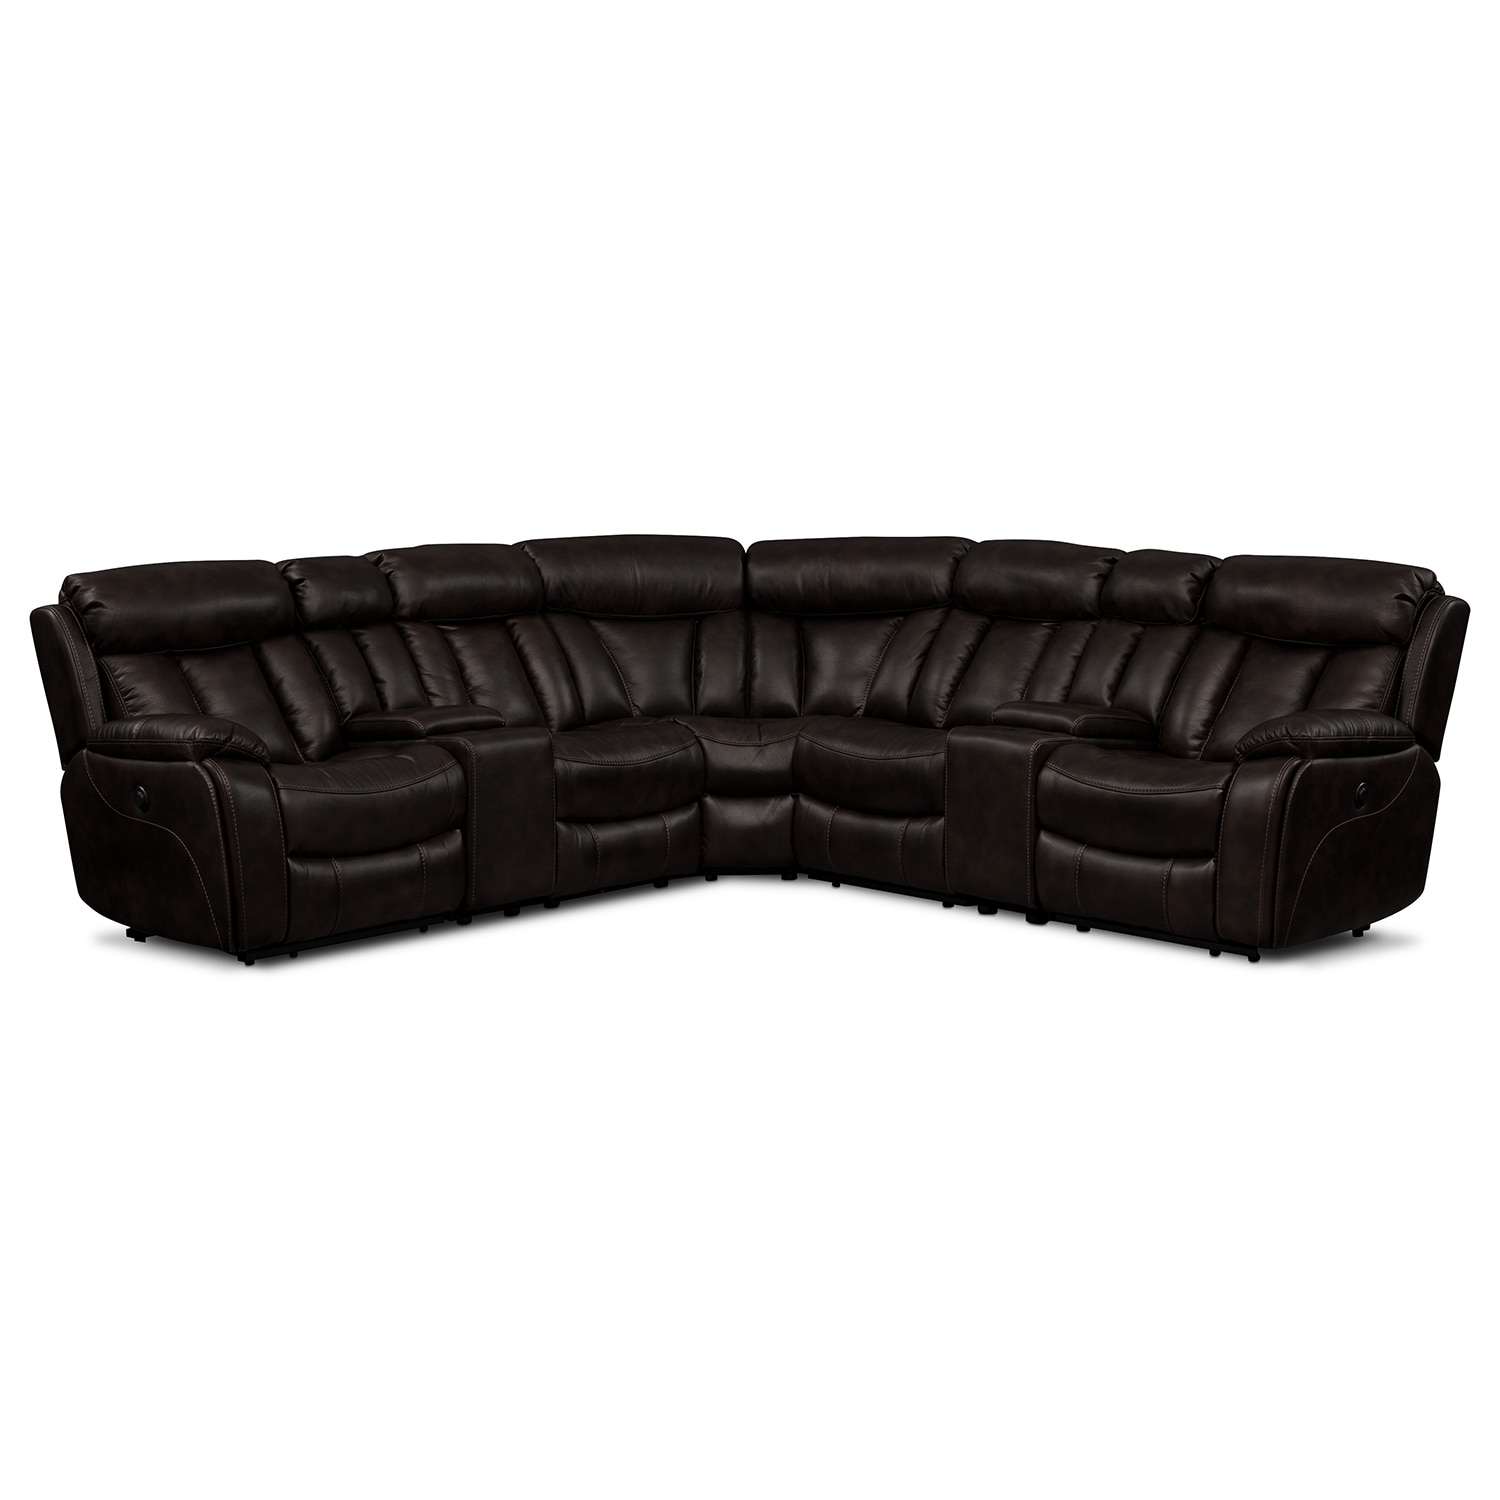 Black Sectional Couches sectional sofas | american signature | american signature furniture